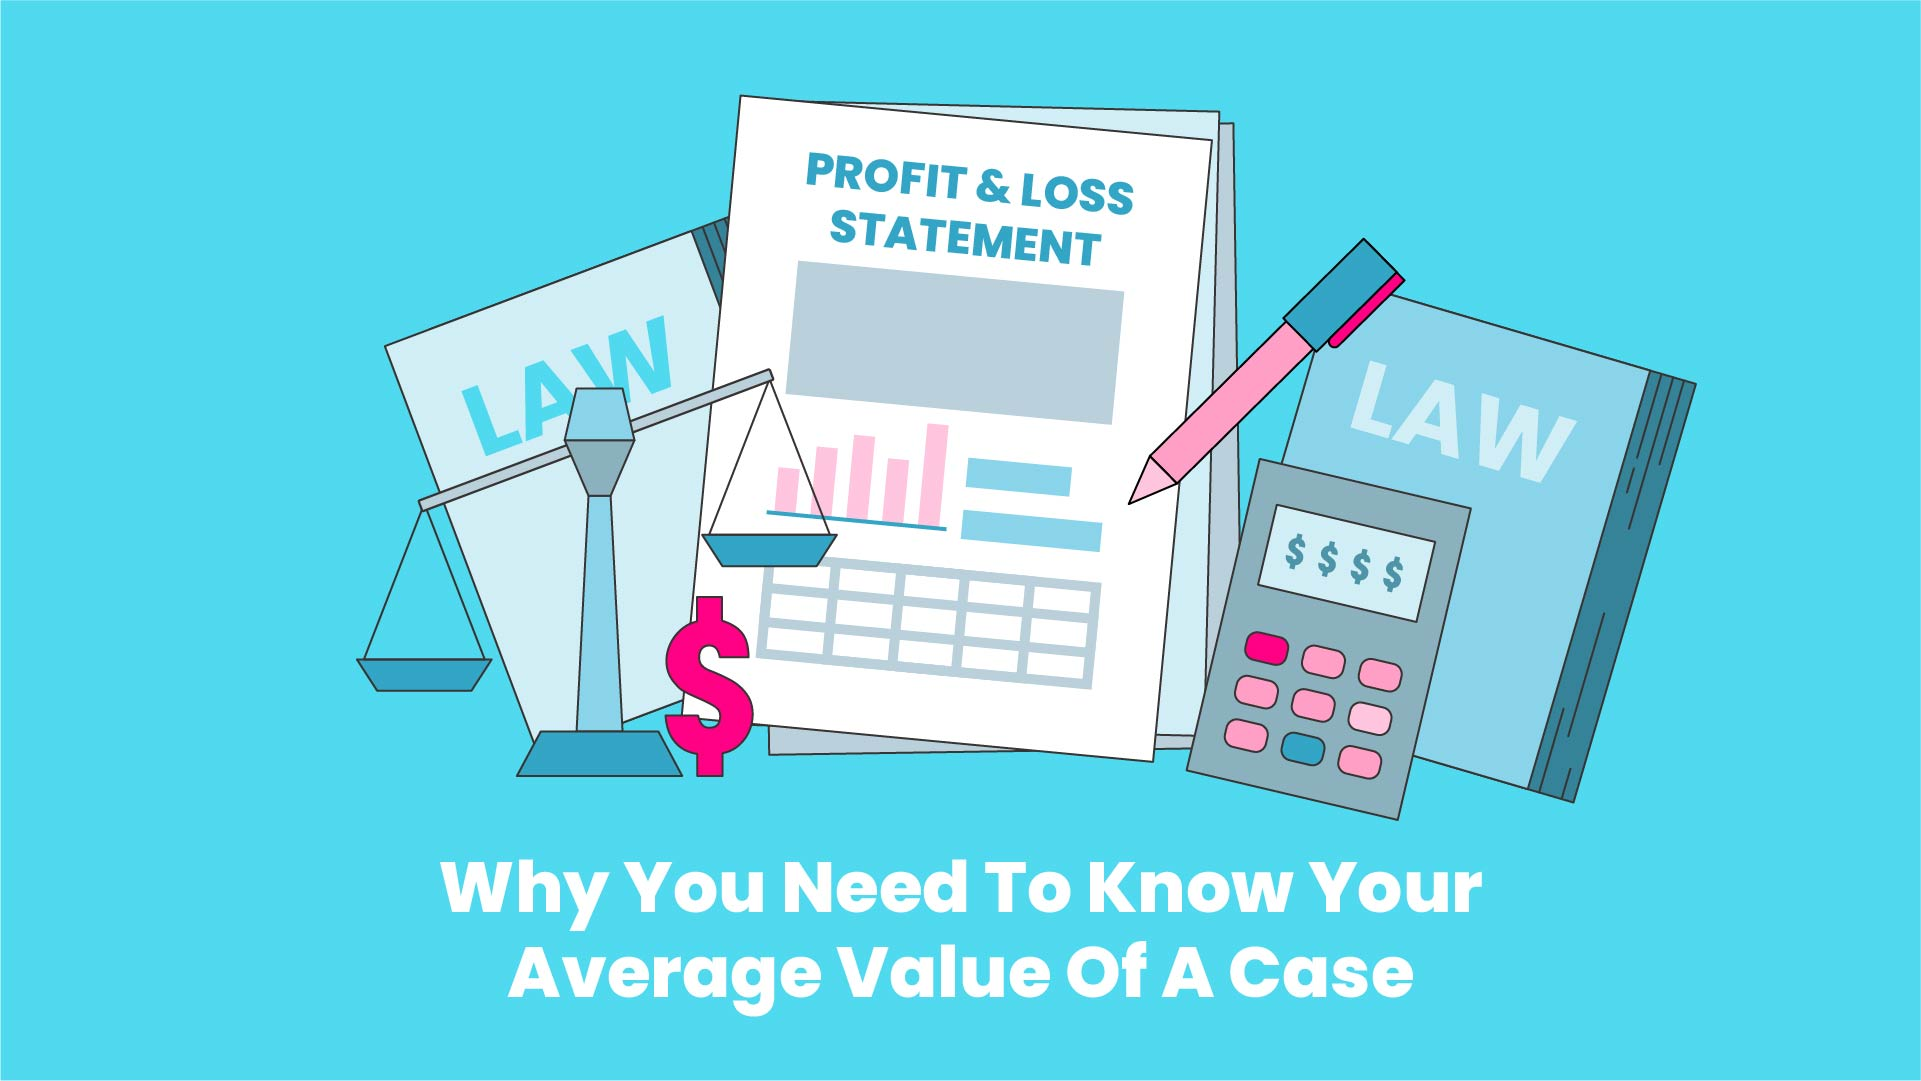 Why You Need To Know Your Average Value Of A Case